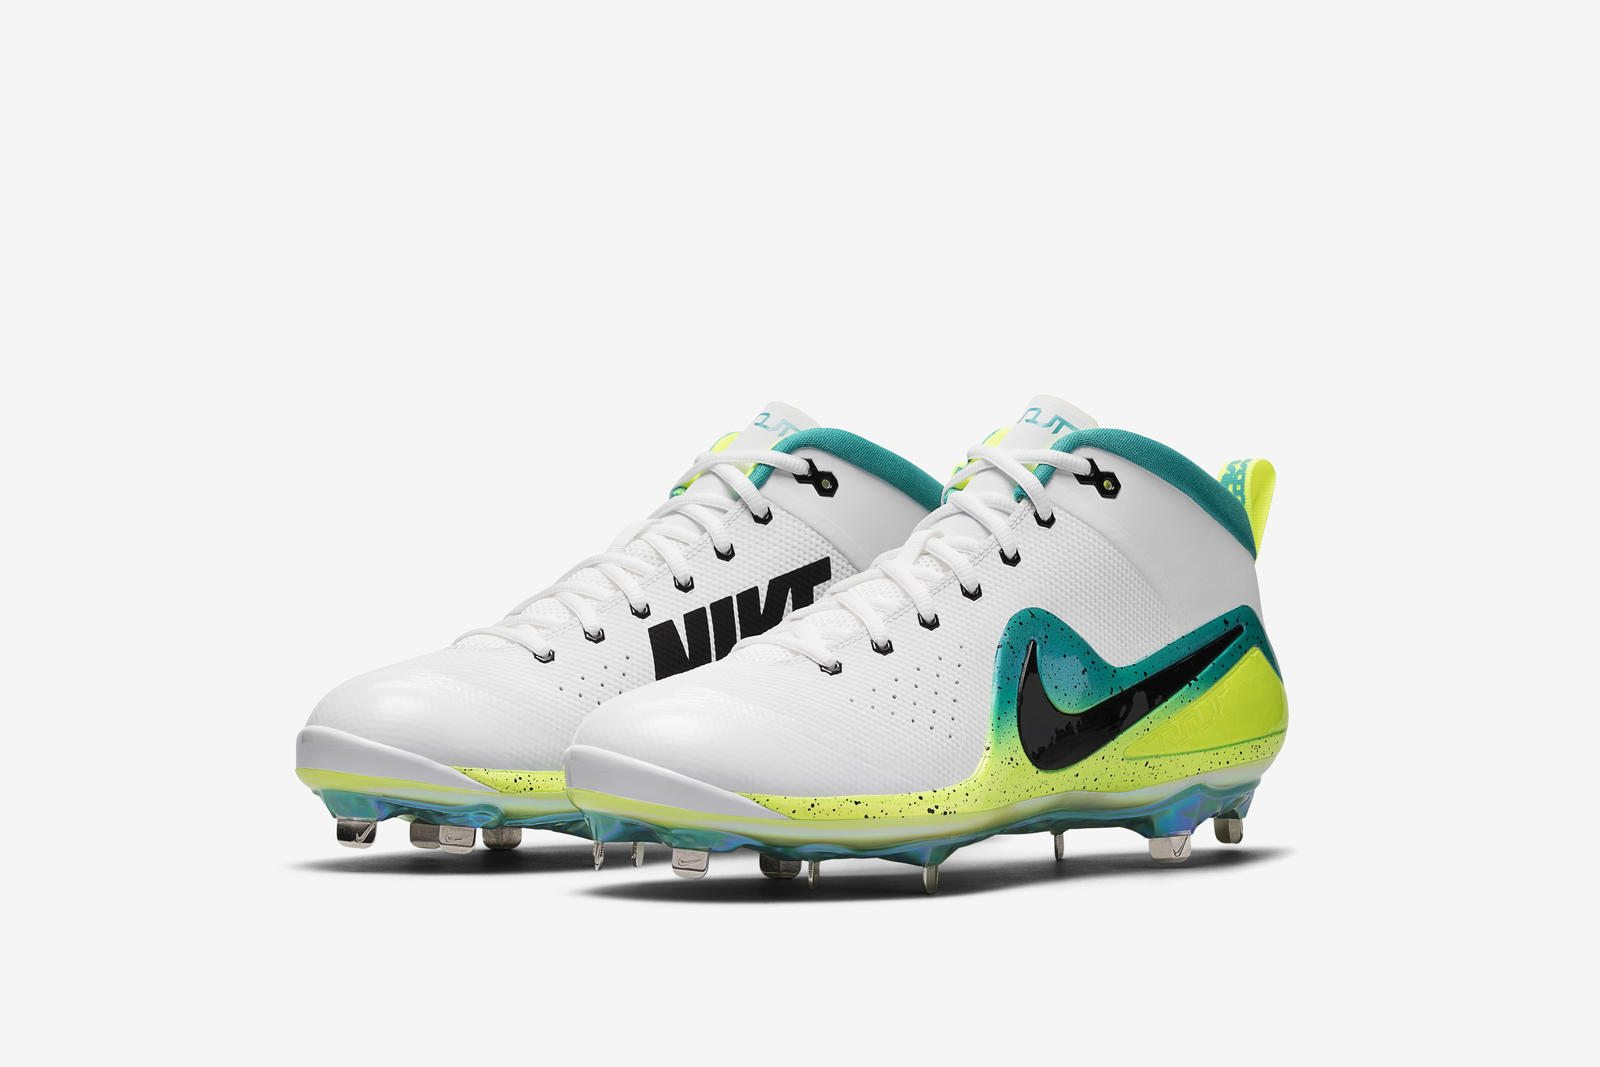 Nike Zoom Trout 4 Cleat